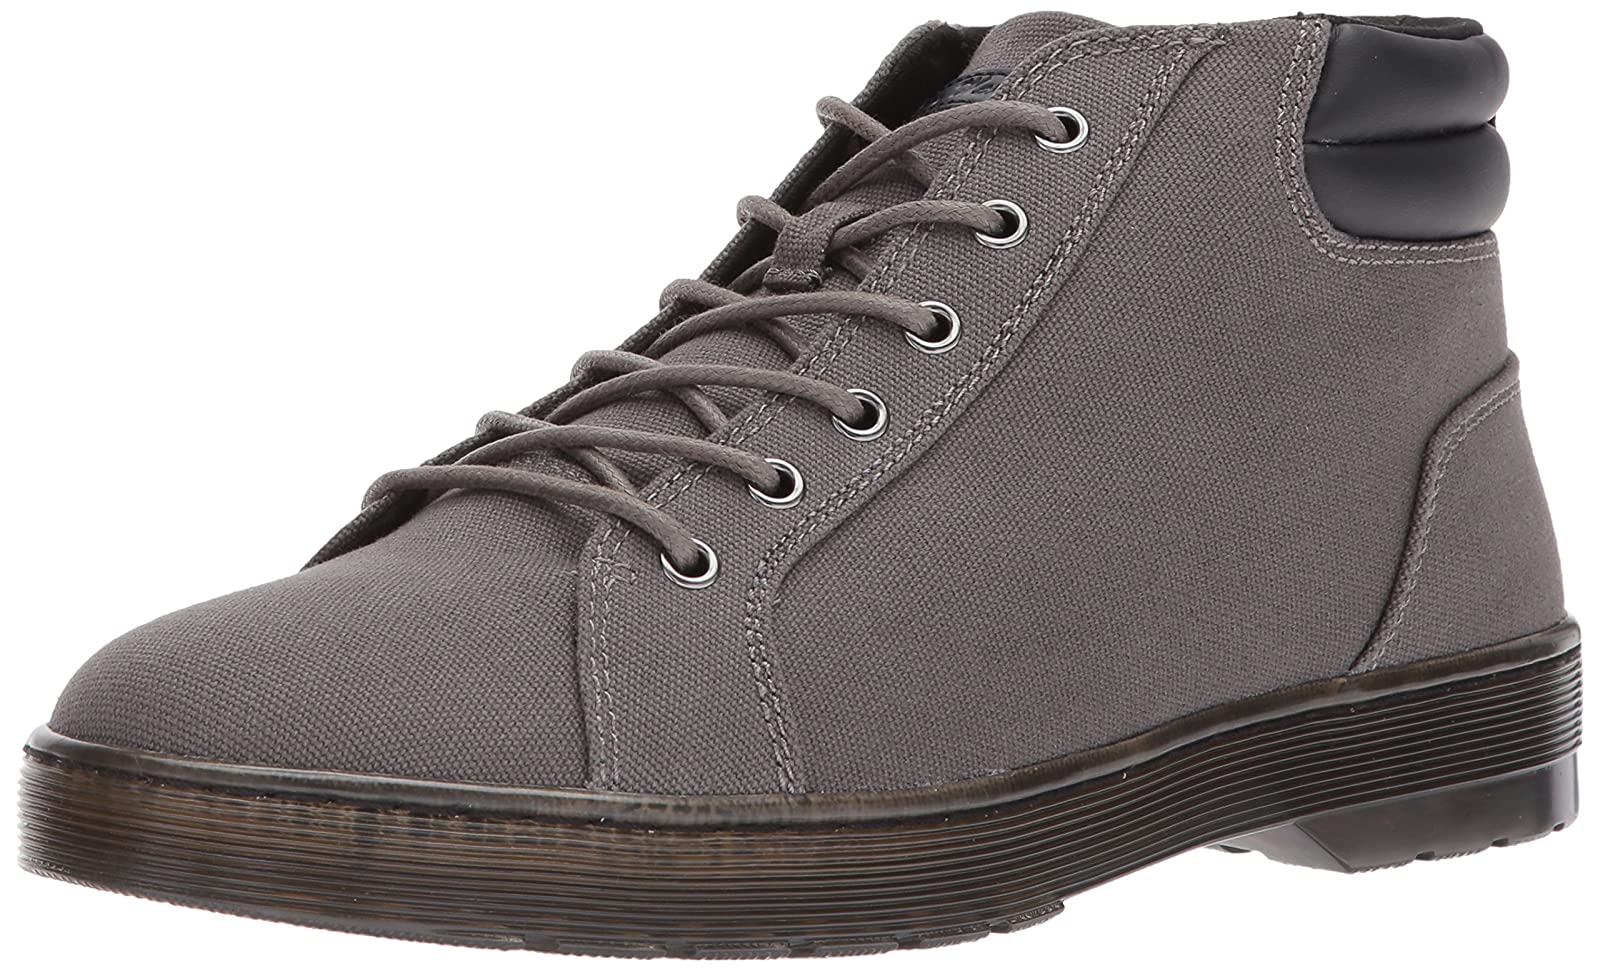 Dr. Martens Men's Plaza Gunmetal Fashion Boot R22864029 - 1